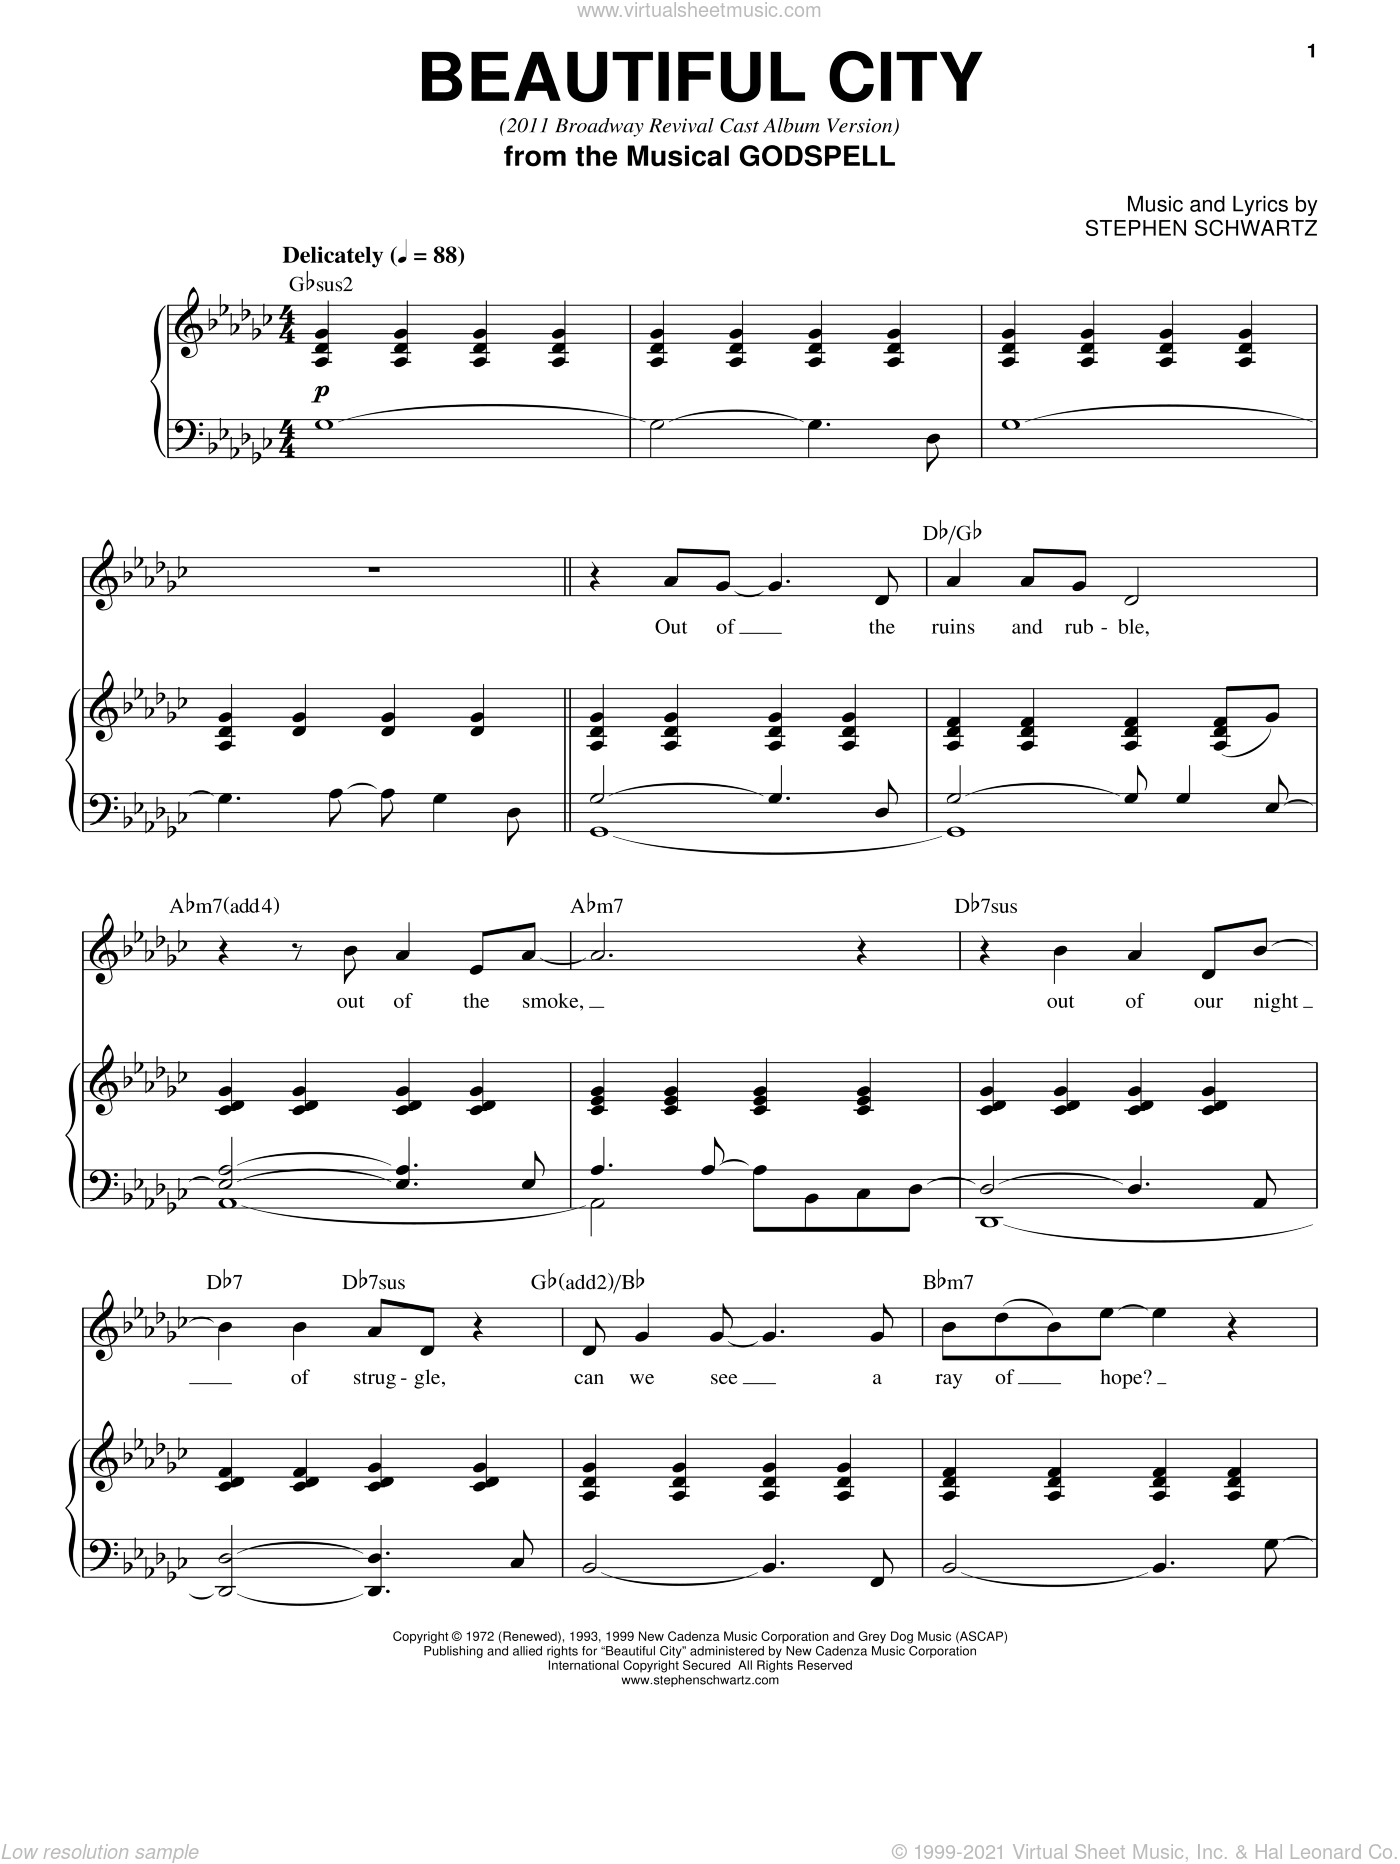 Beautiful City (2011 Broadway Revival Cast Album Version) sheet music for voice, piano or guitar by Stephen Schwartz, intermediate. Score Image Preview.